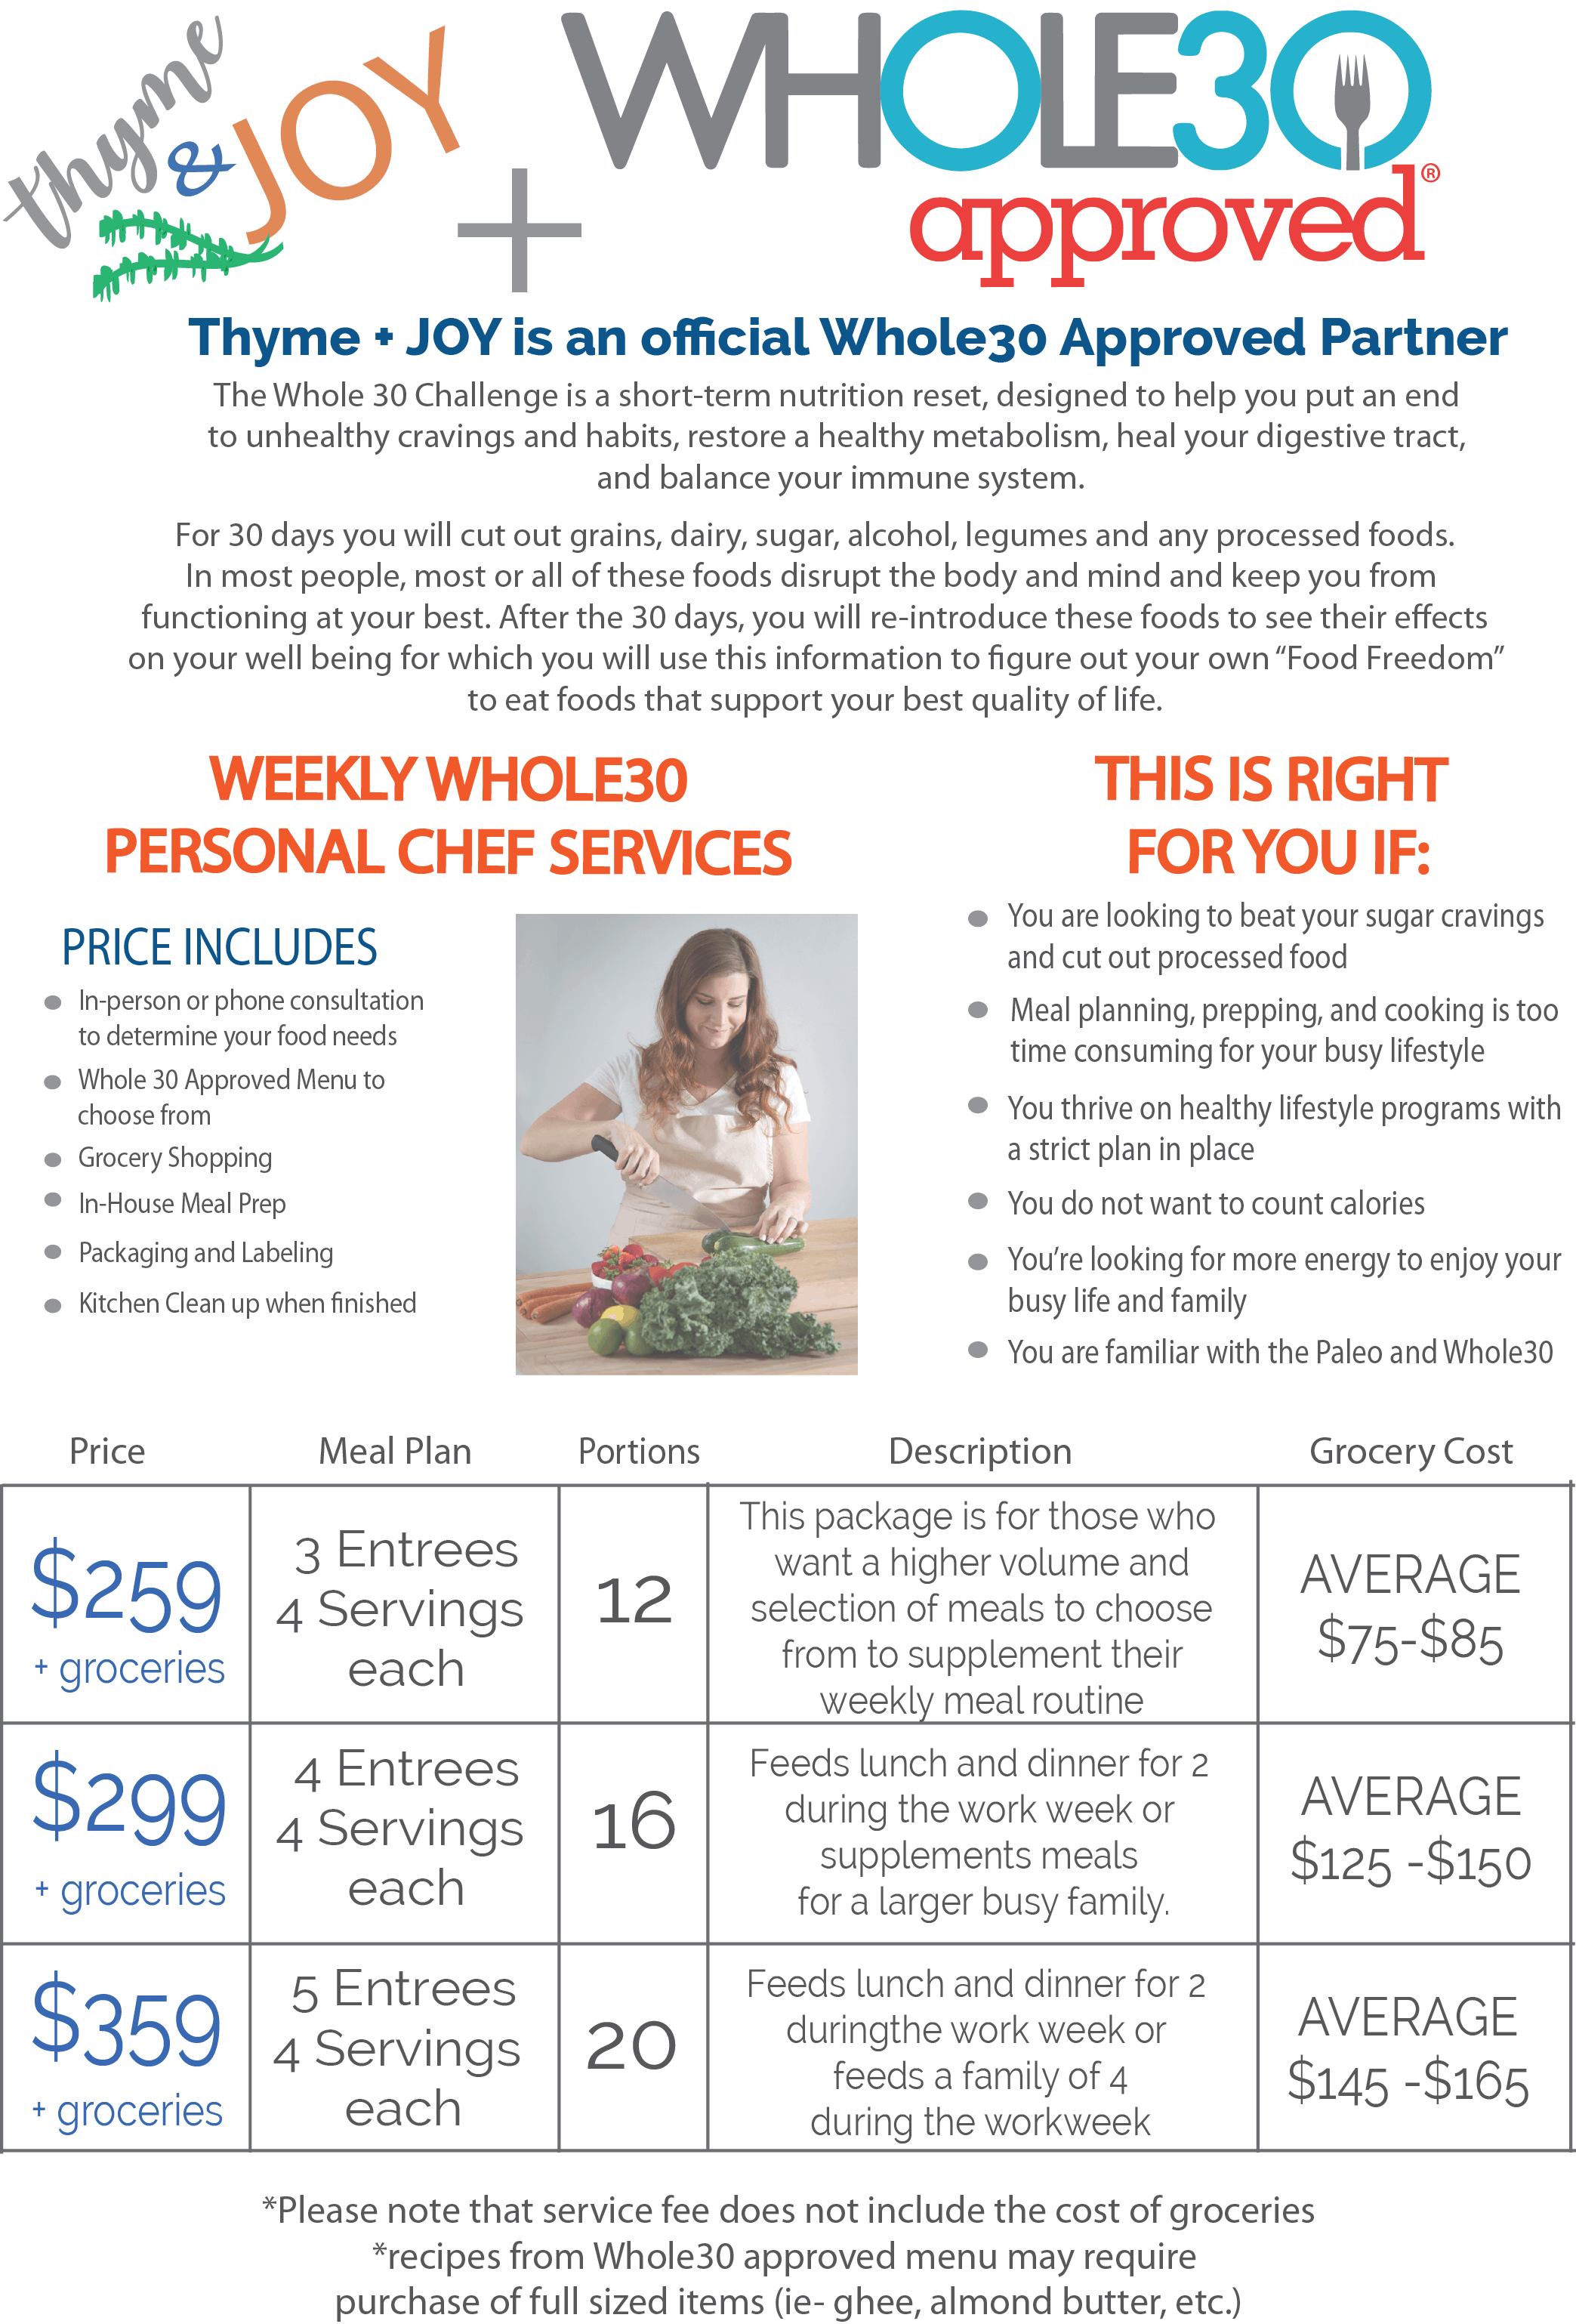 Whole30 approved personal chef service Charleston SC | Whole30 Chef